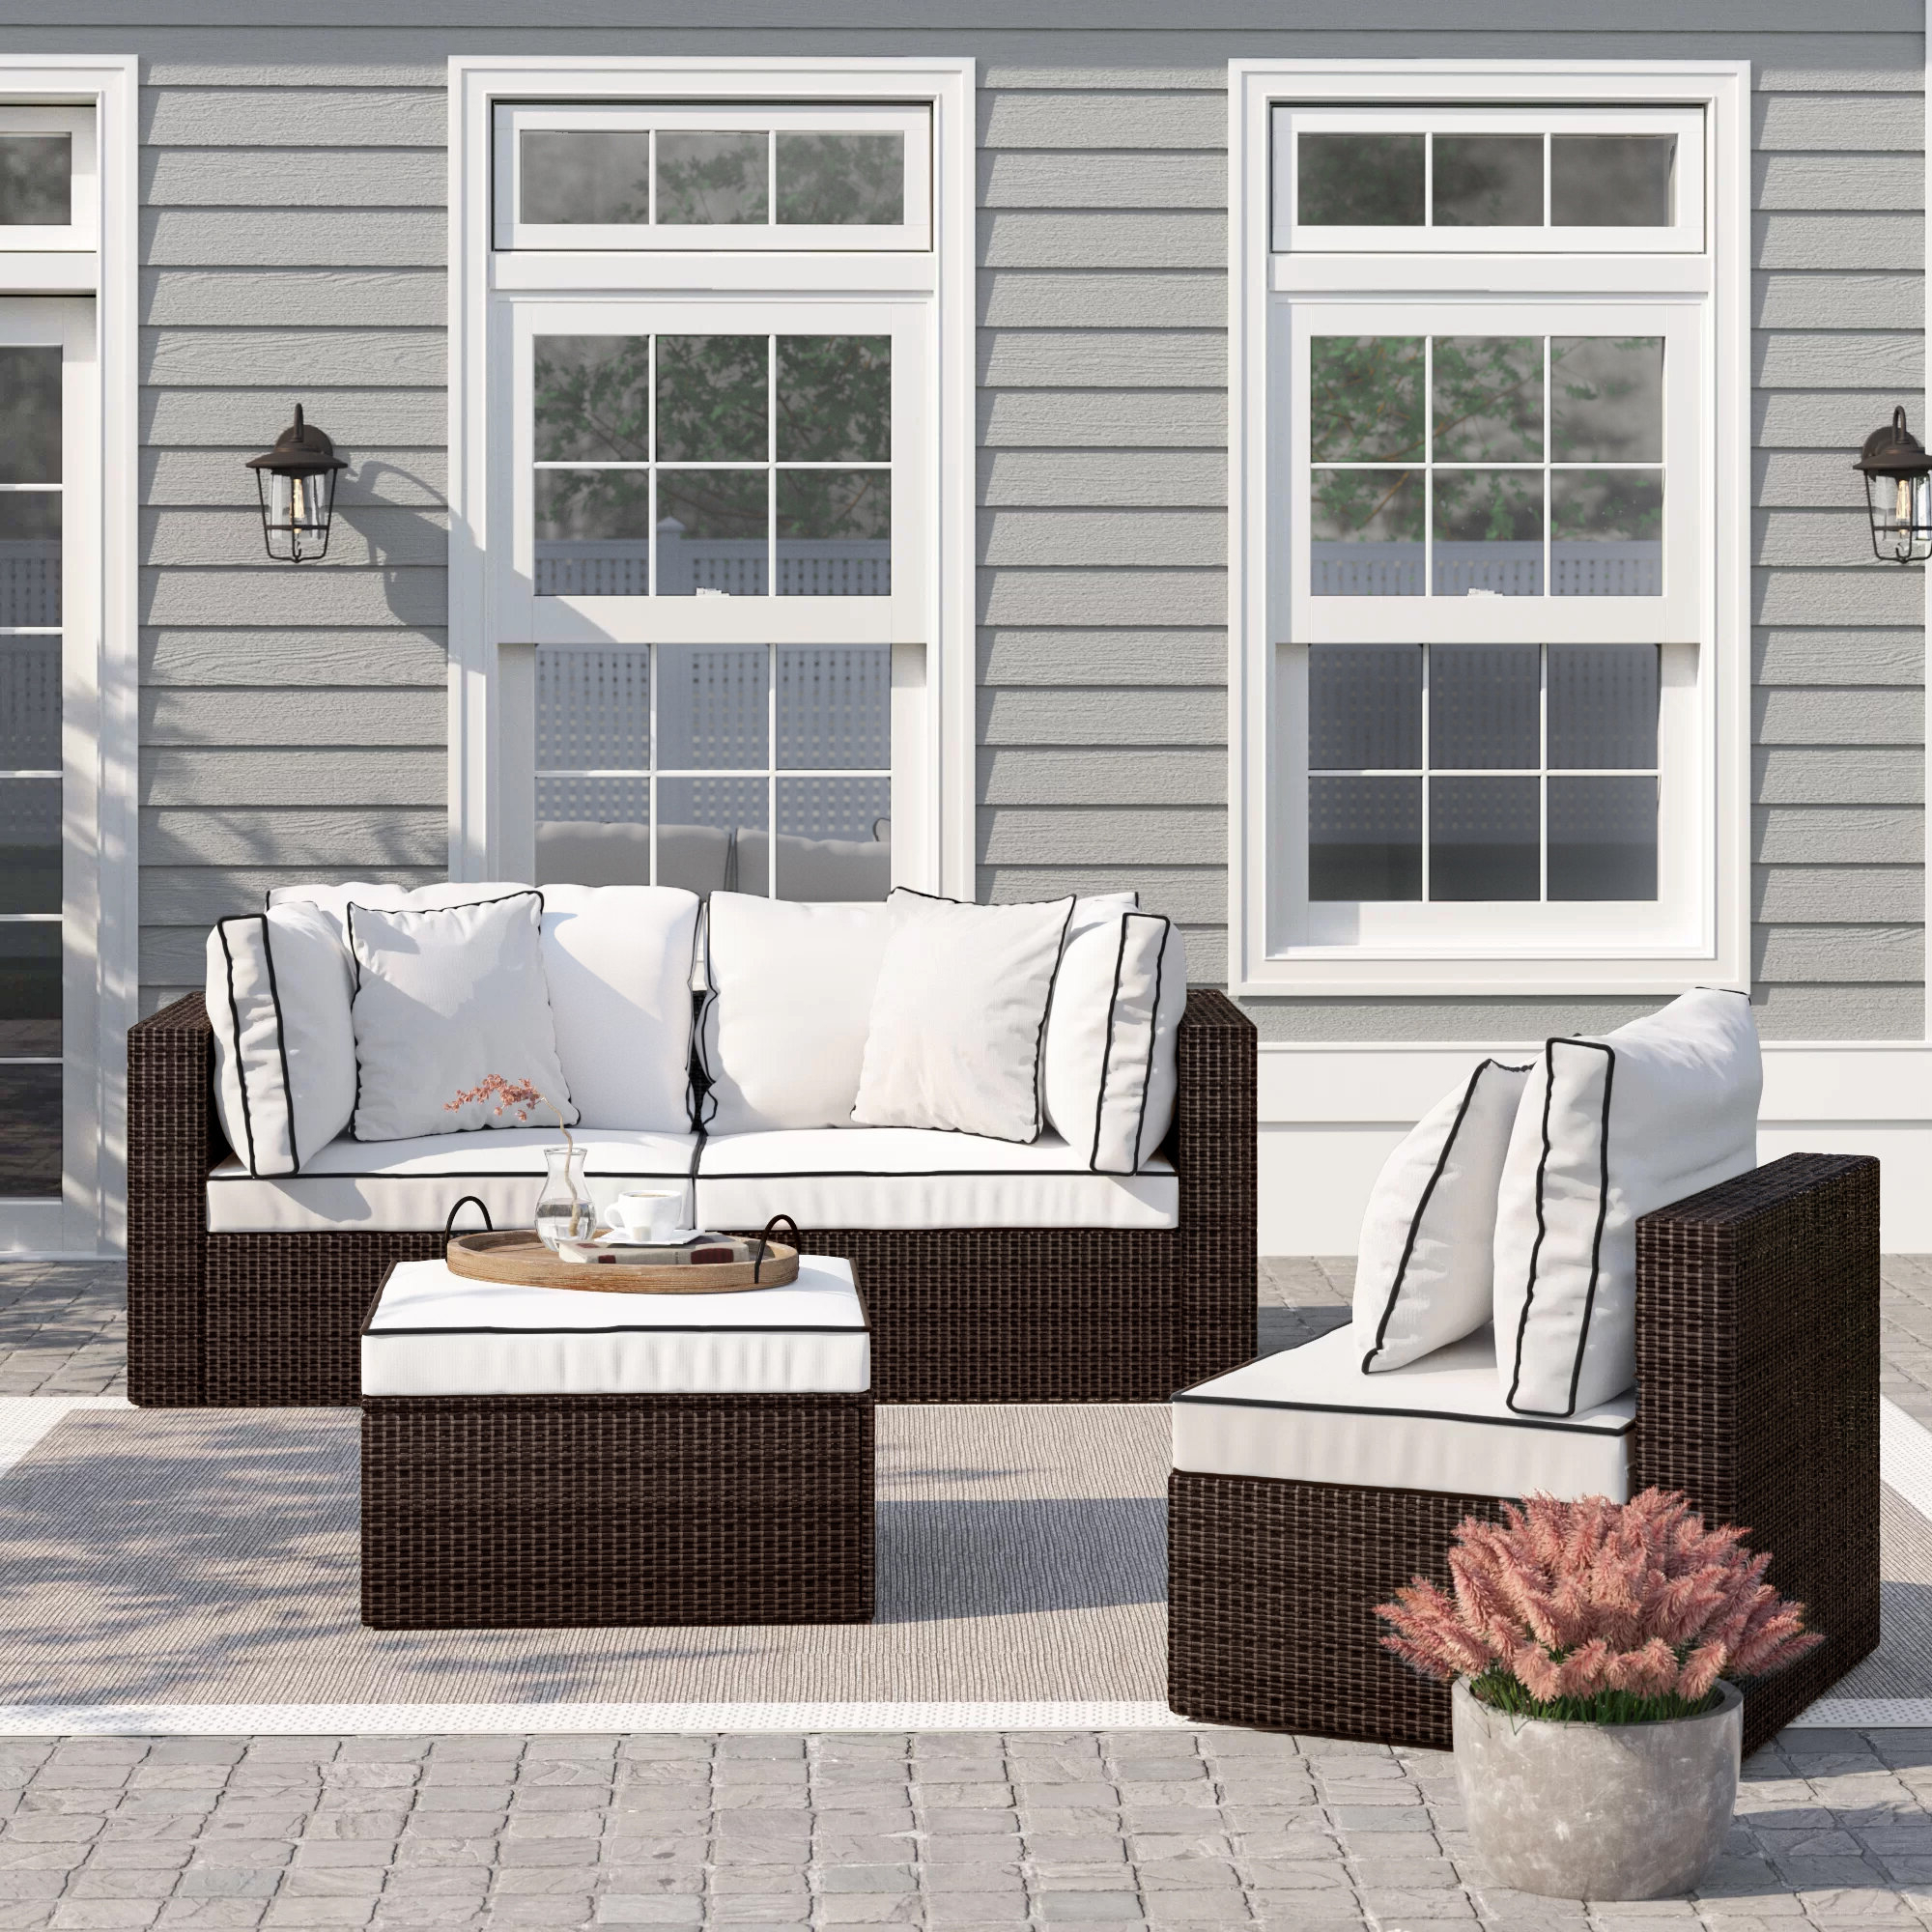 Burruss Patio Sectional With Cushions Within 2020 Lawson Patio Sofas With Cushions (Gallery 25 of 25)